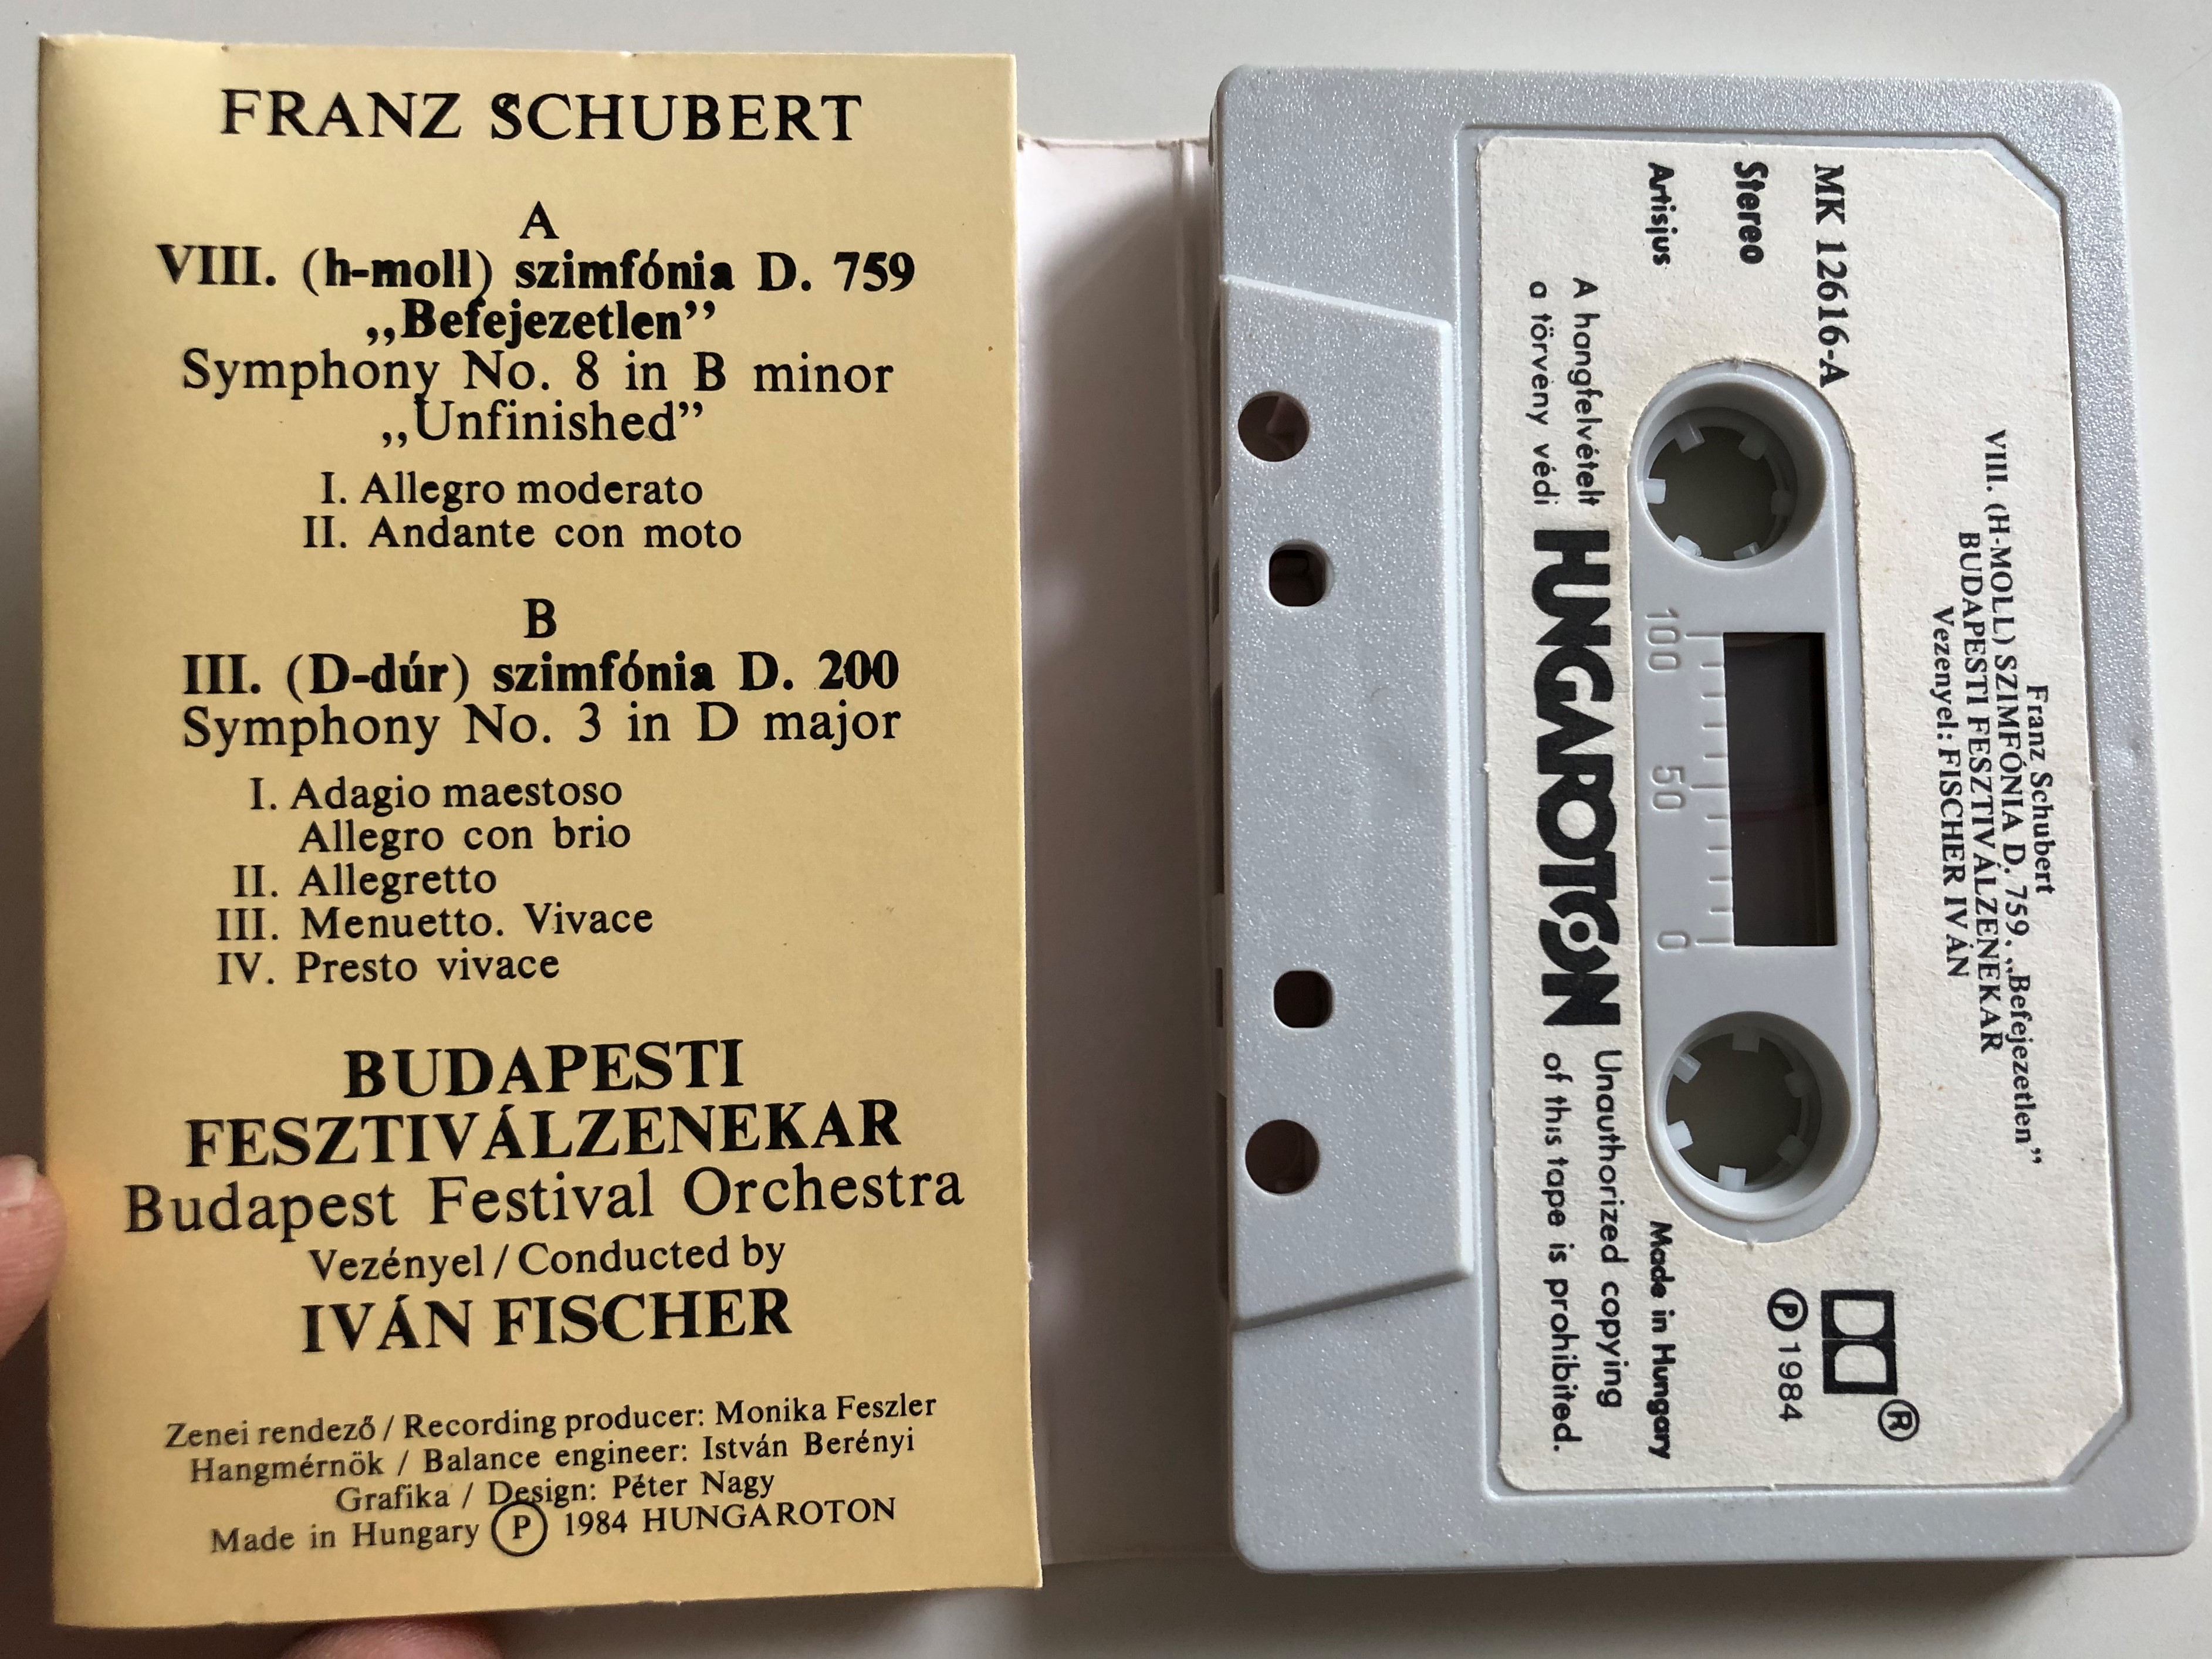 schubert-symphony-no.-8-in-b-minor-unfinished-symphony-no.-3-in-d-major-budapest-festival-orchestra-ivan-fischer-hungaroton-cassette-stereo-mk-12616-2-.jpg